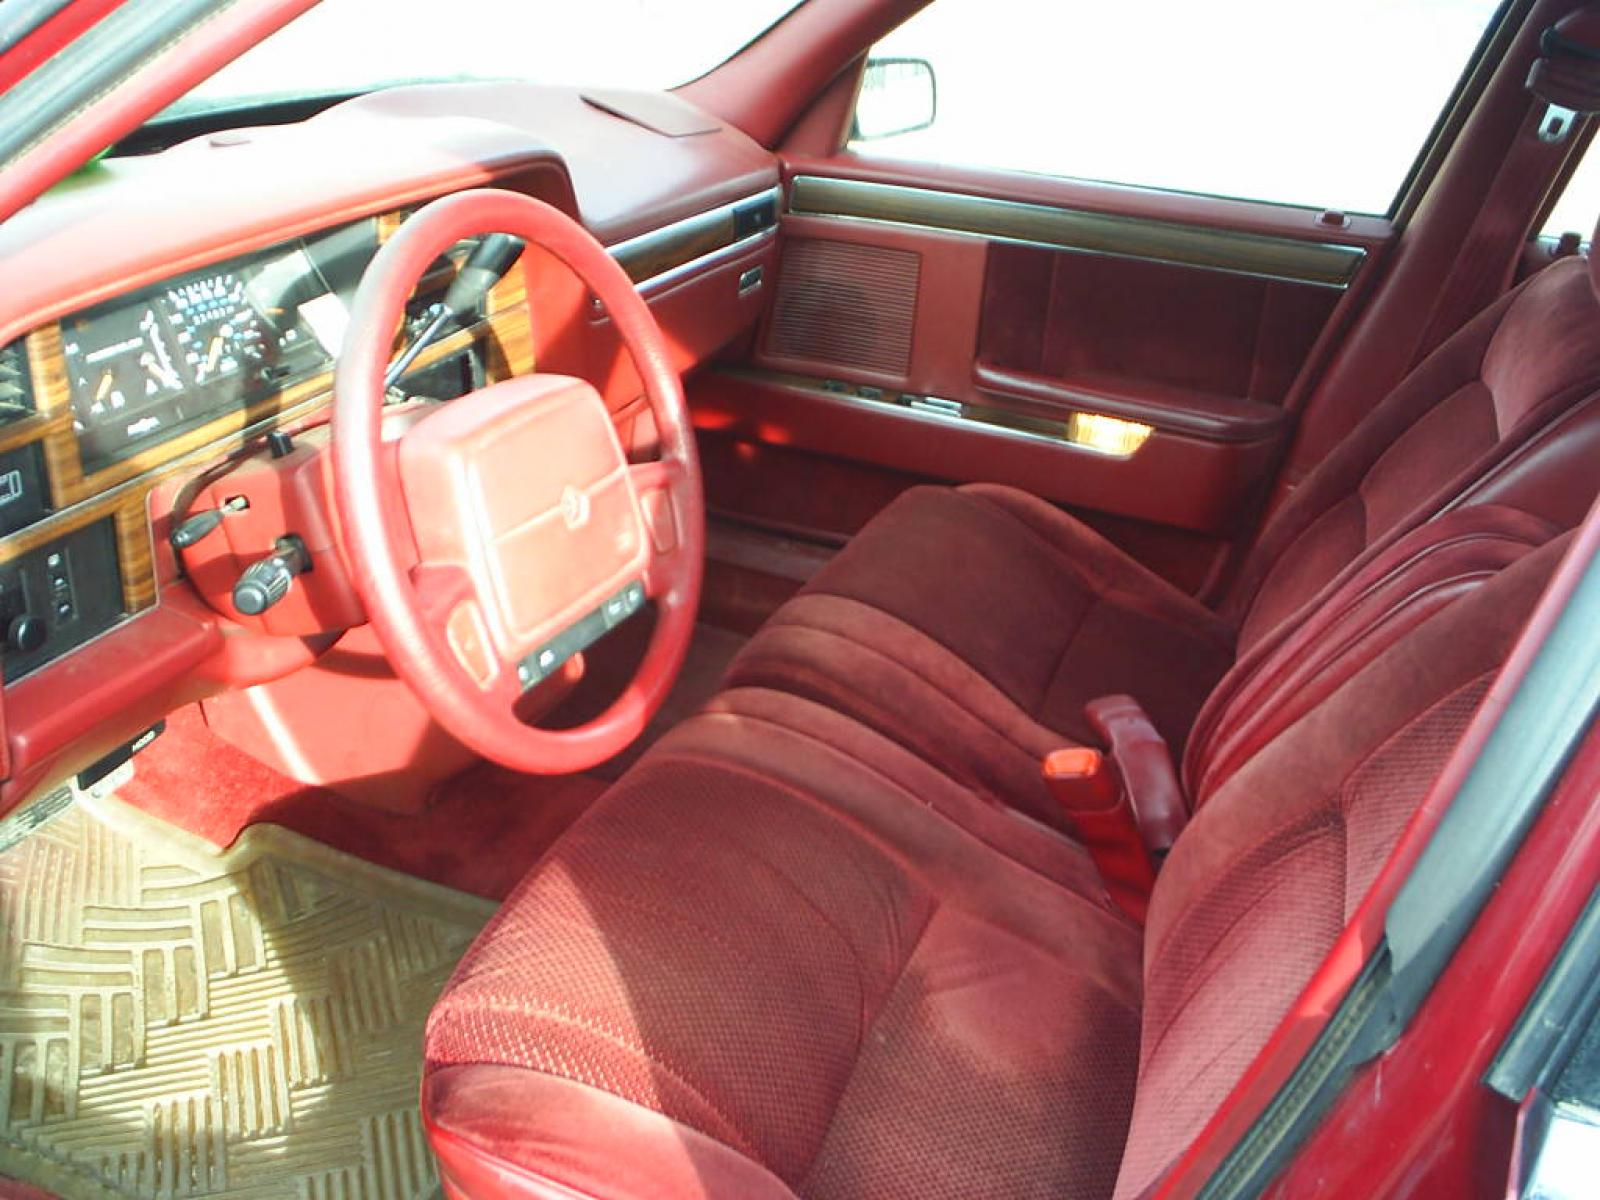 1990 Dodge Dynasty Information And Photos Zombiedrive Wiring Diagram Schematic 800 1024 1280 1600 Origin